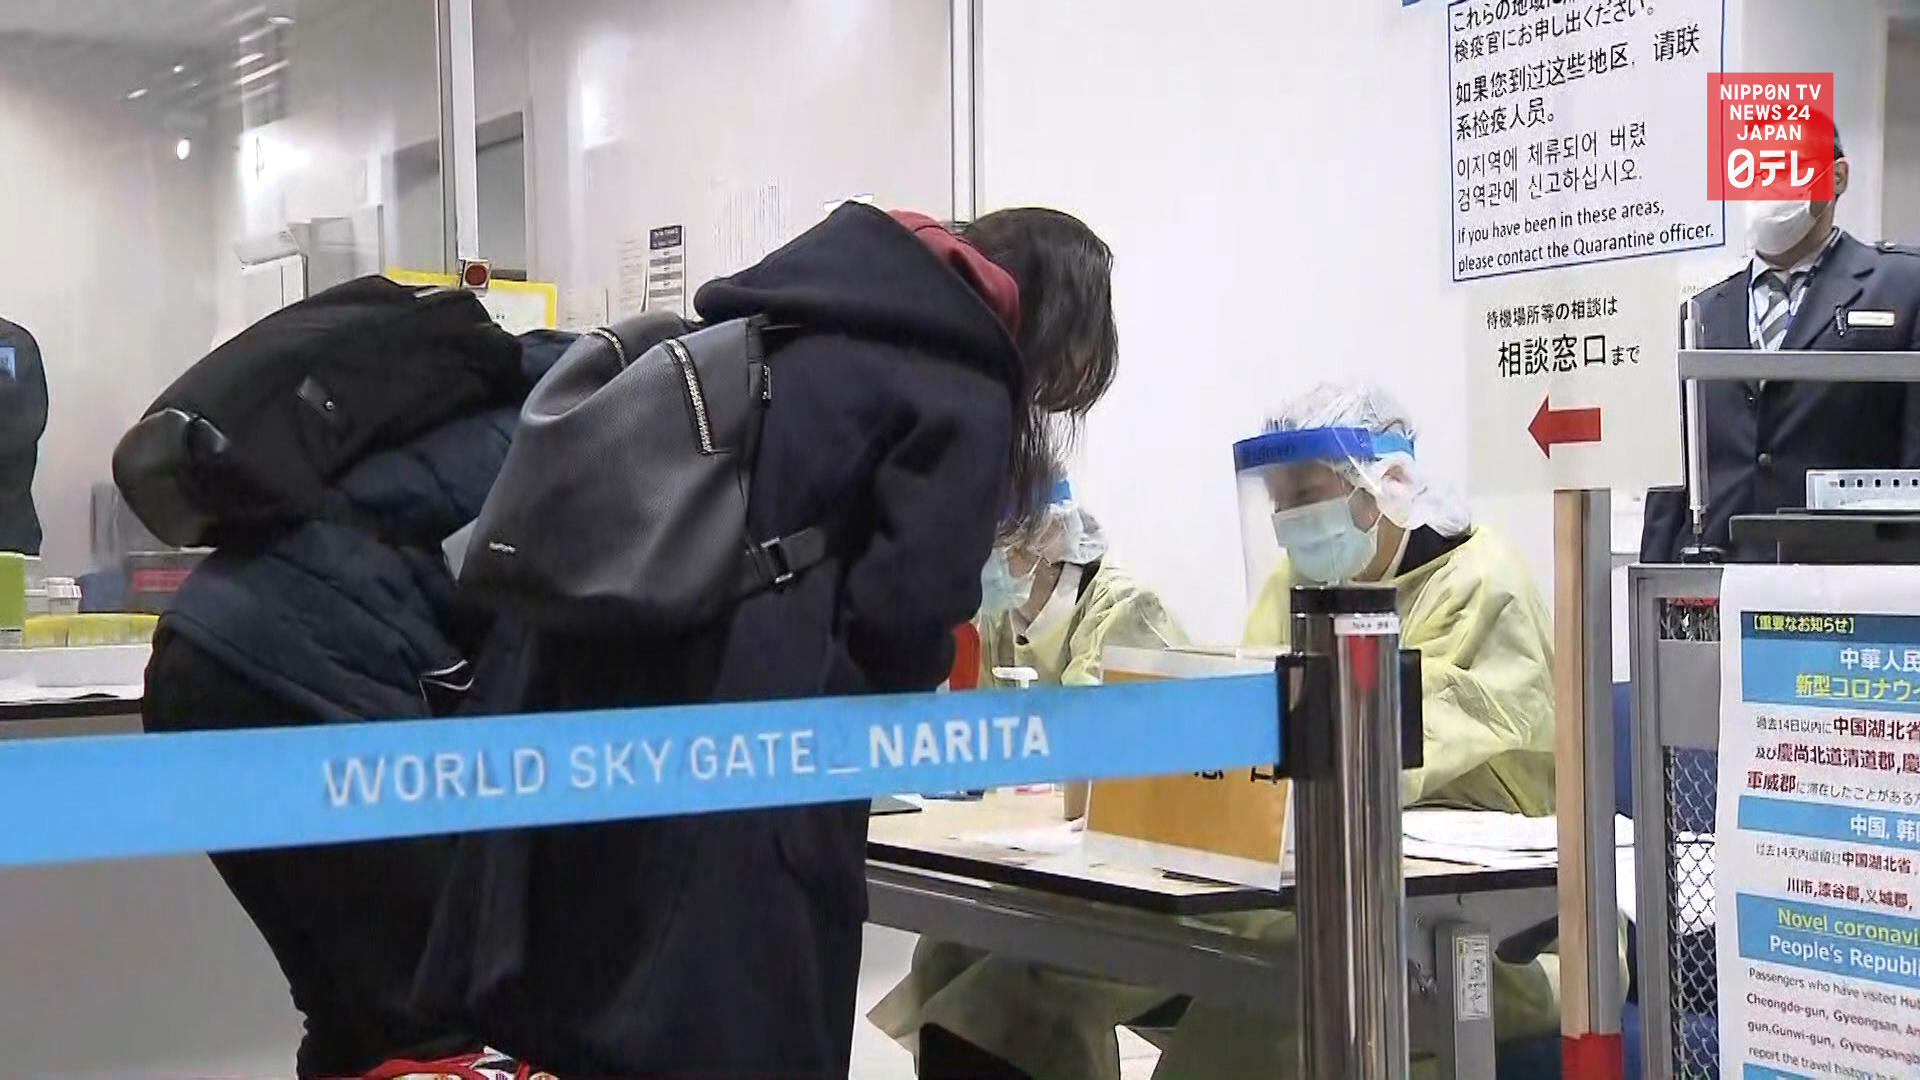 CORONAVIRUS: Japan bans foreign travelers from US, China, S Korea